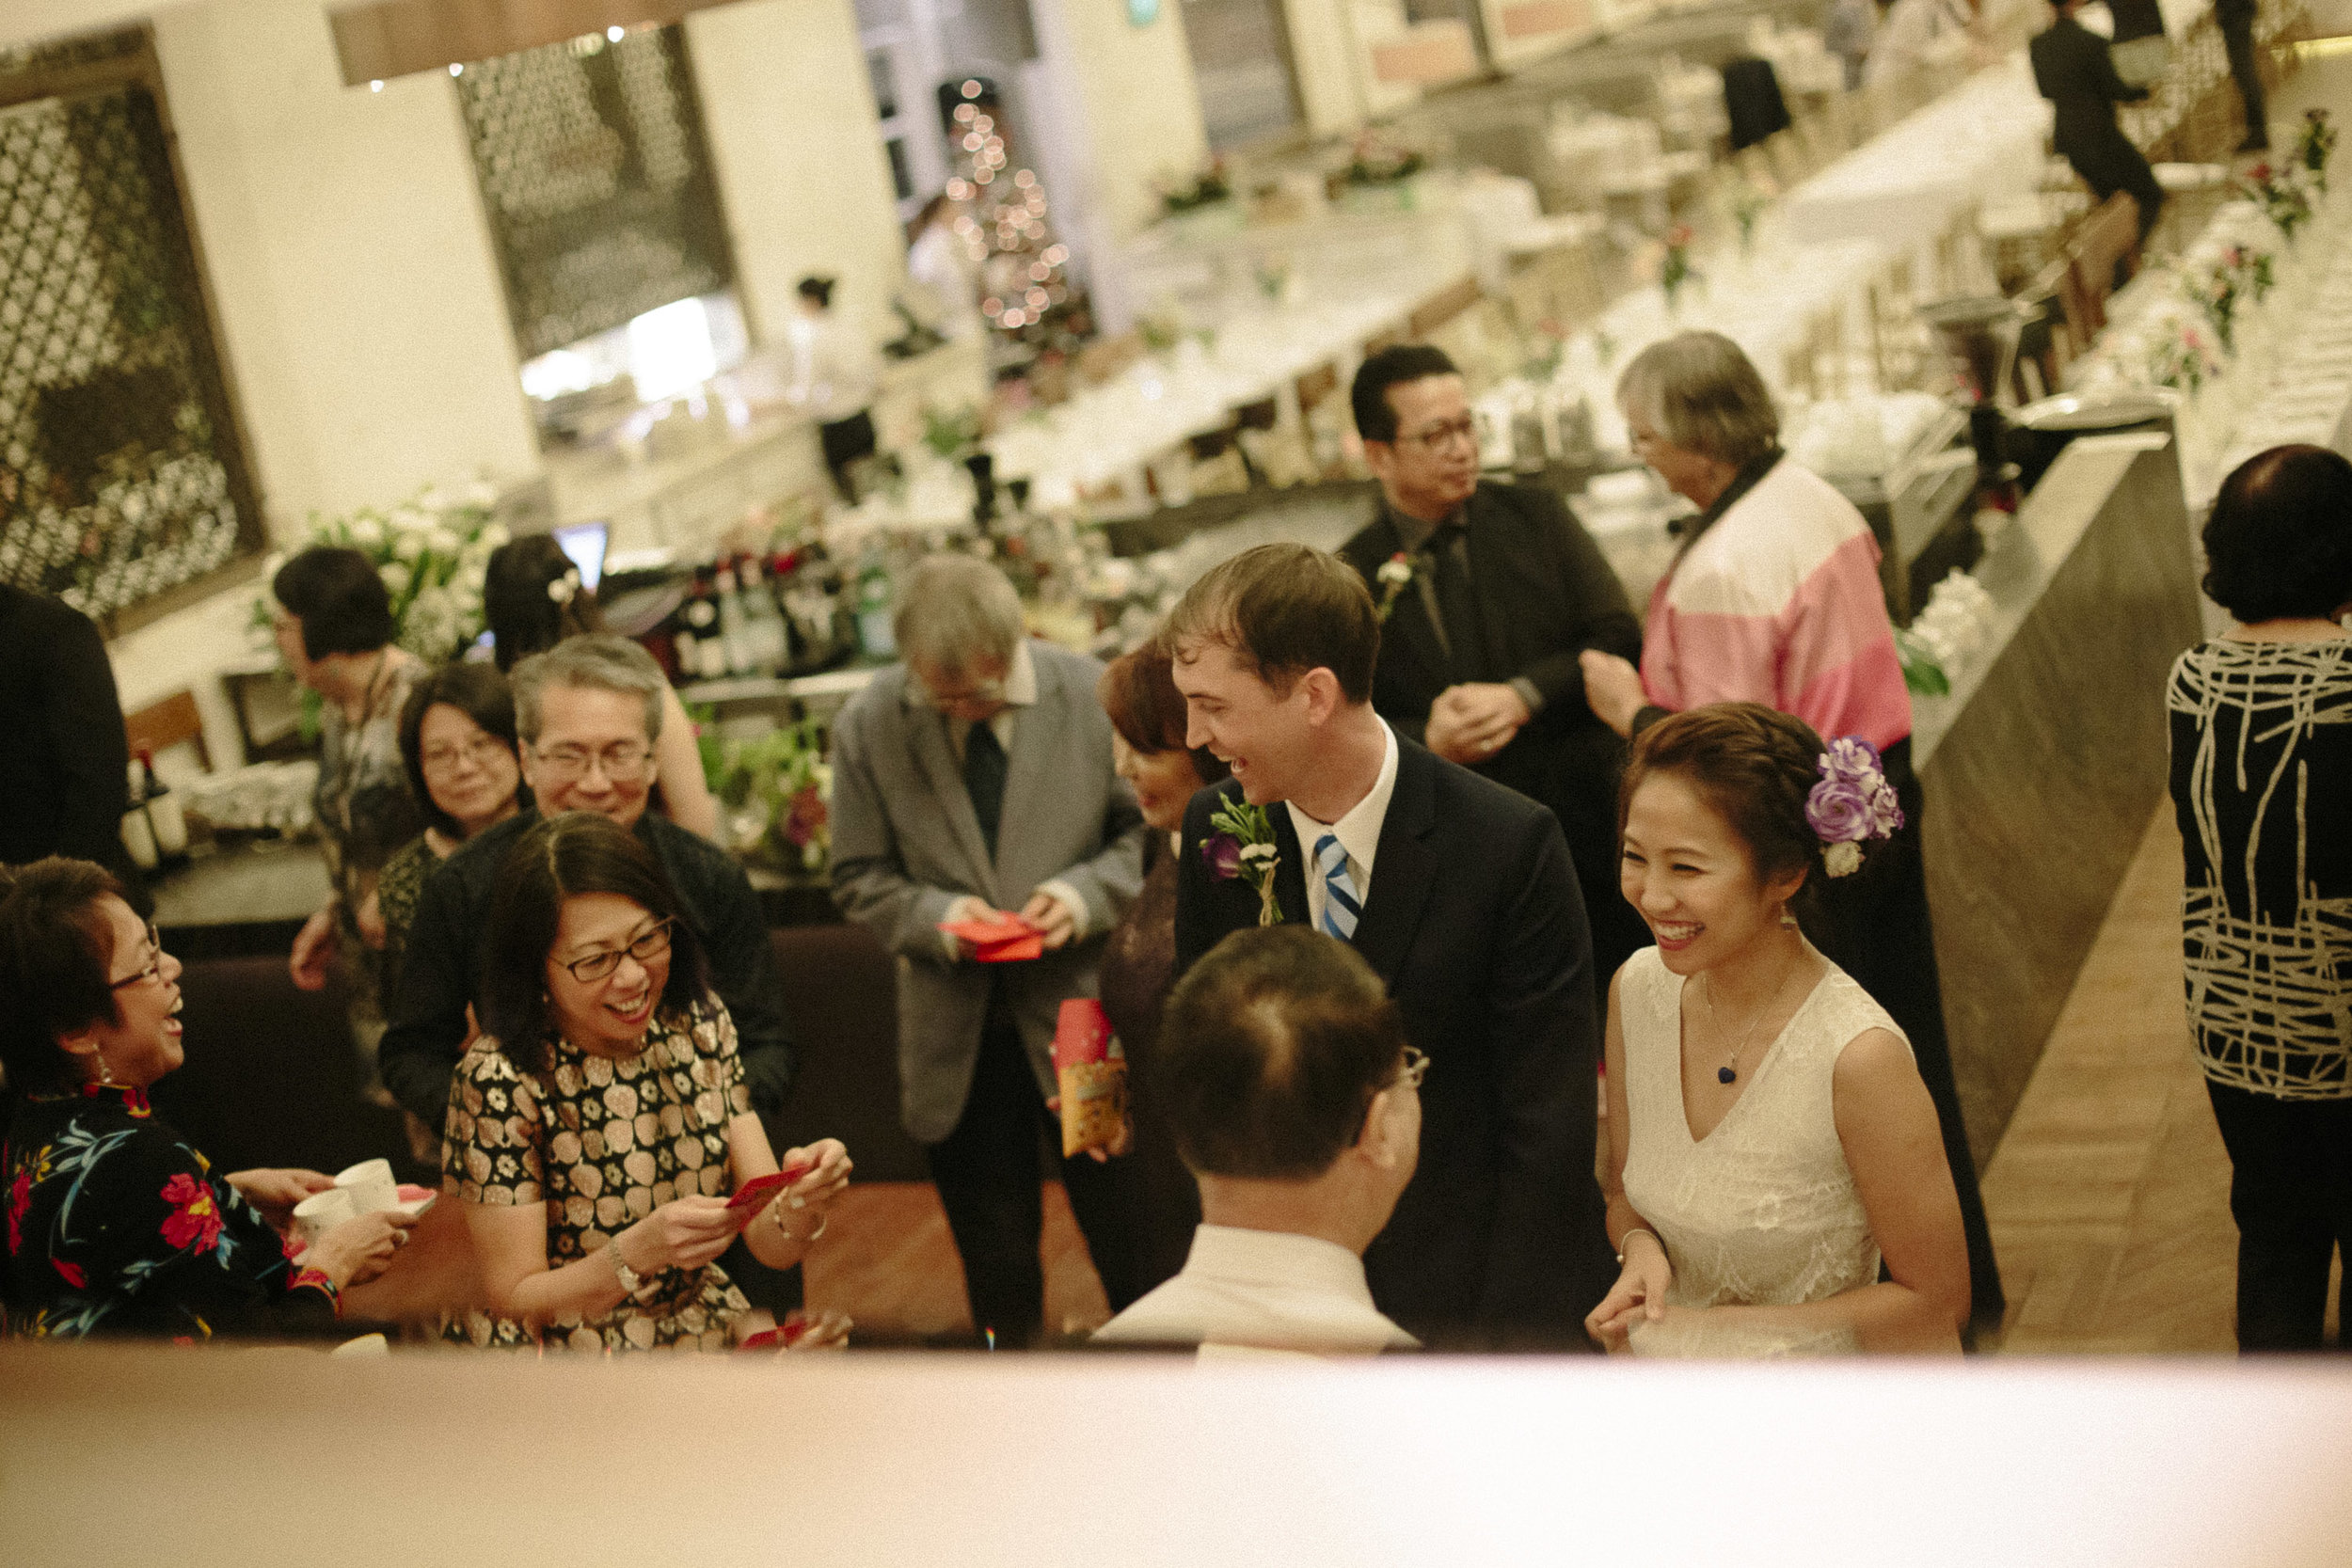 singapore-wedding-photographer-hiram-joyce-053.jpg